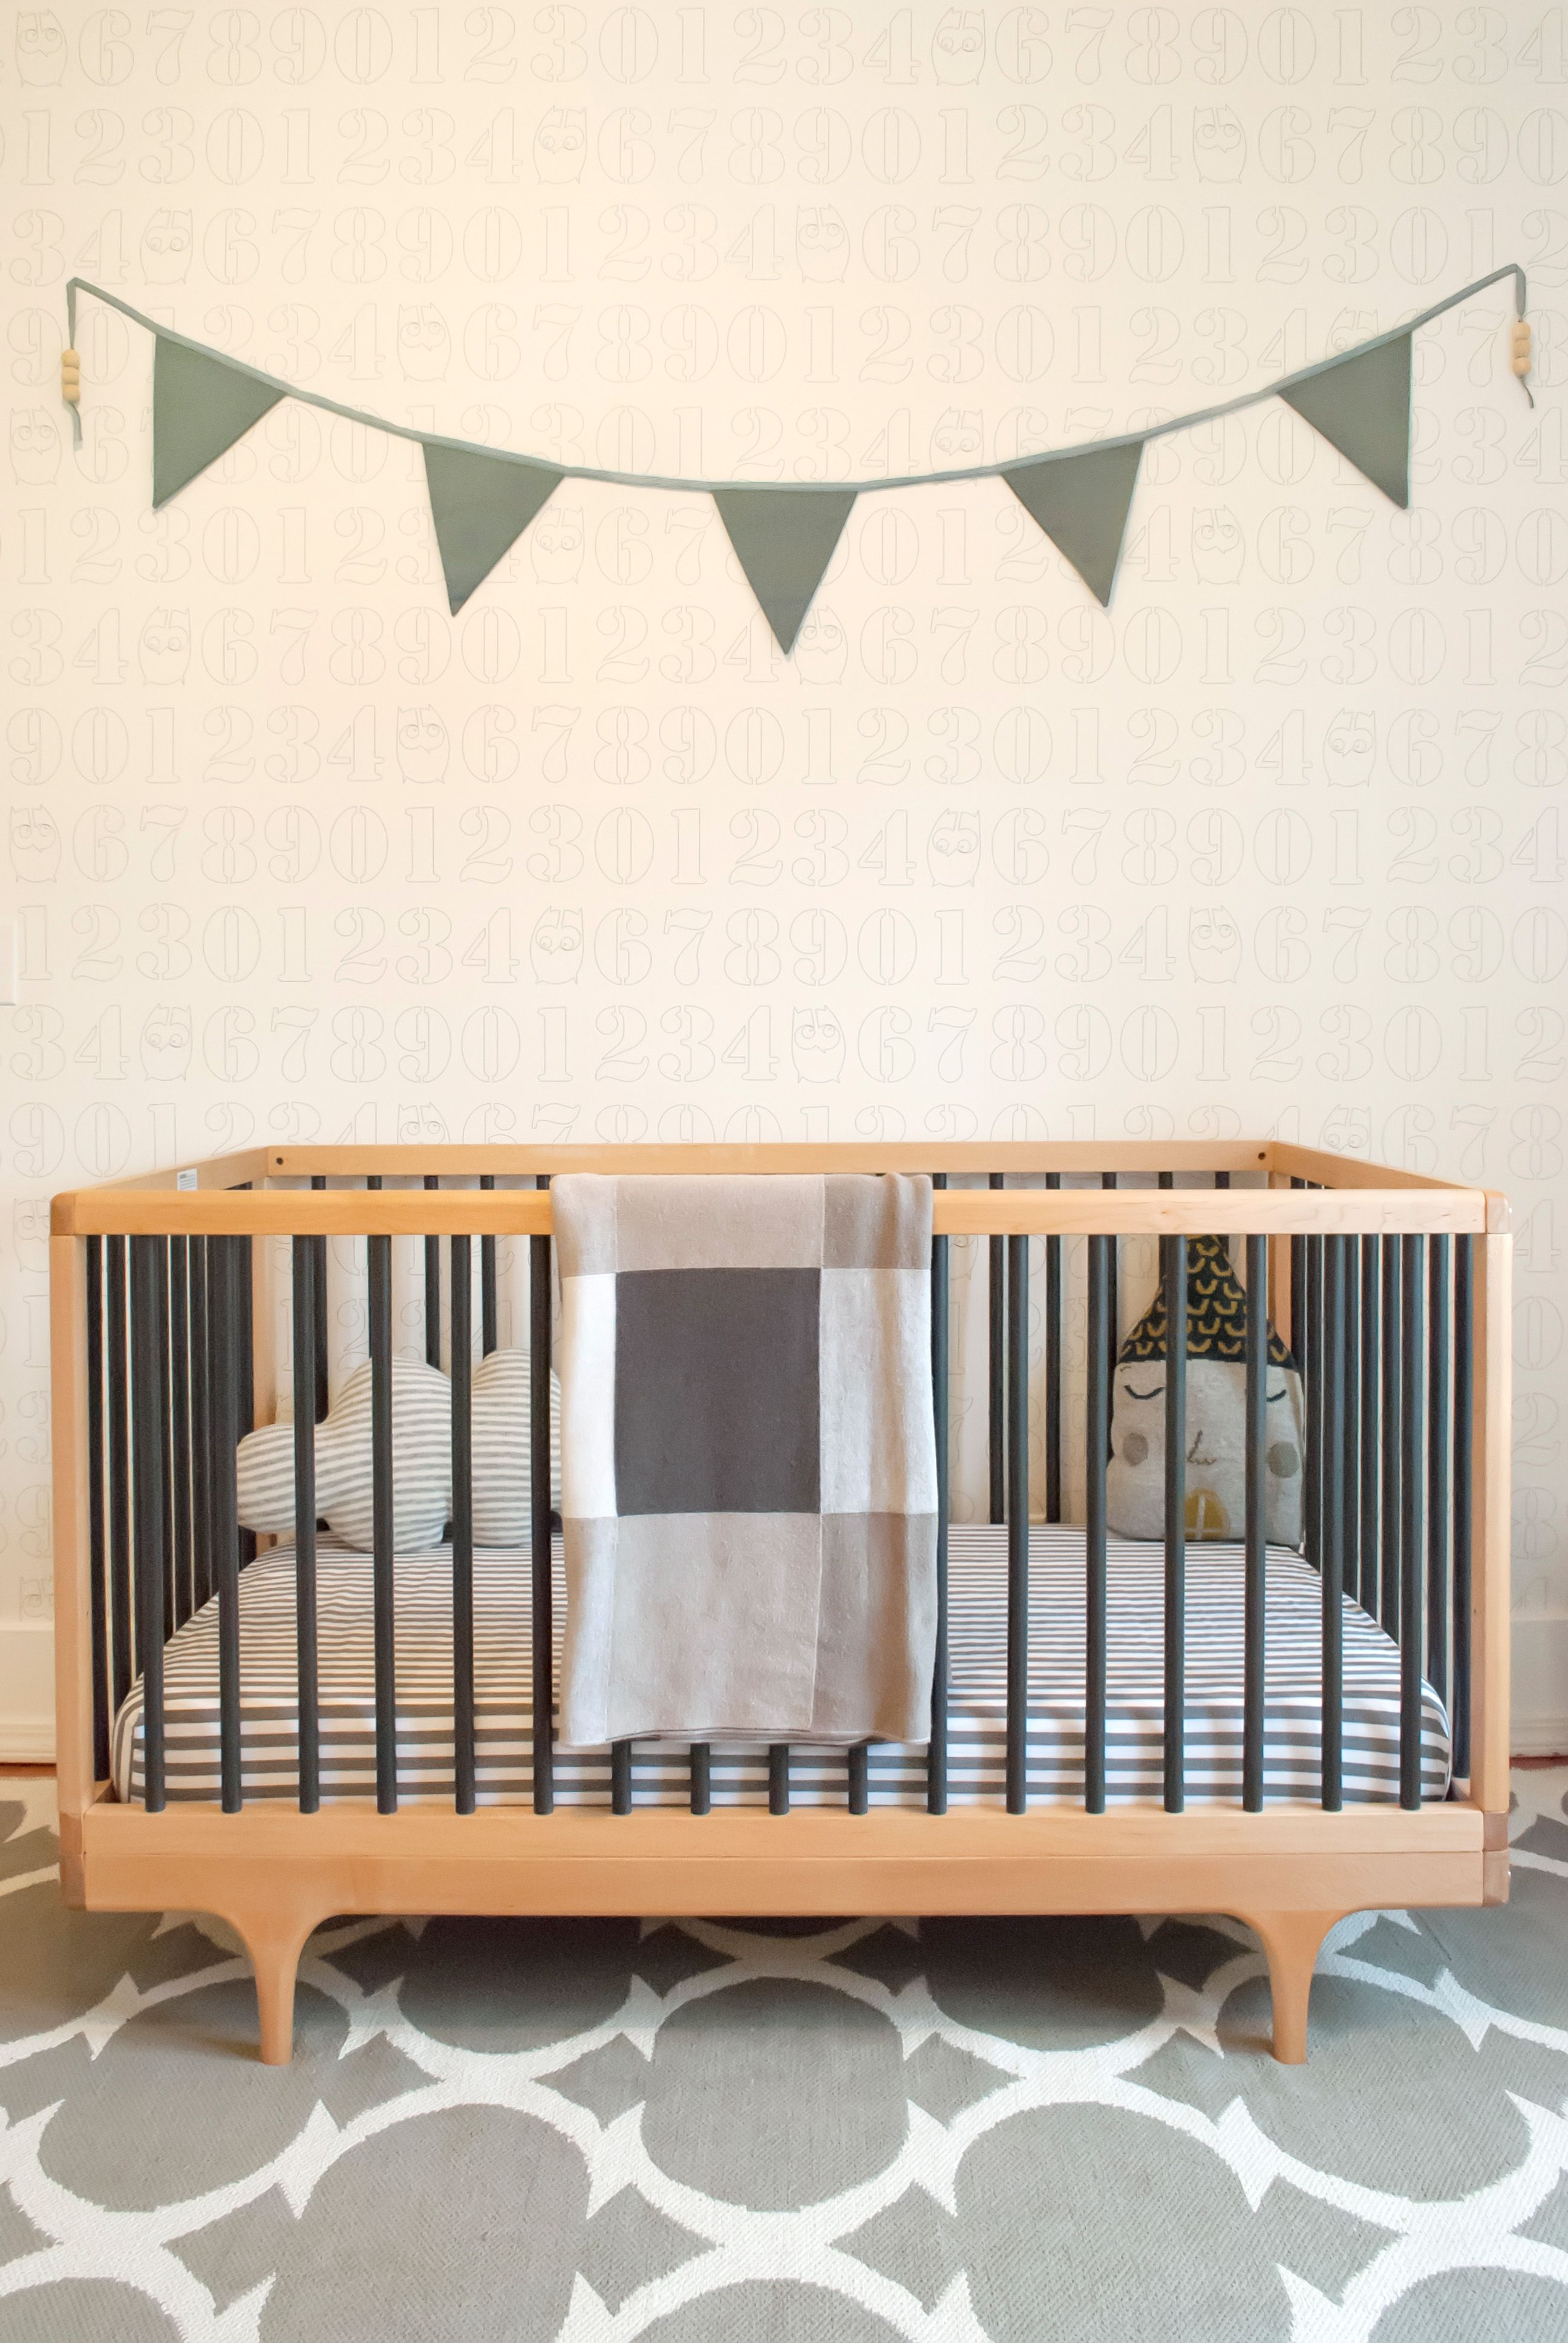 lit volutif caravan crib kalon studios coloris noir sur my kingdomfr - Bebe Lit Evolutif